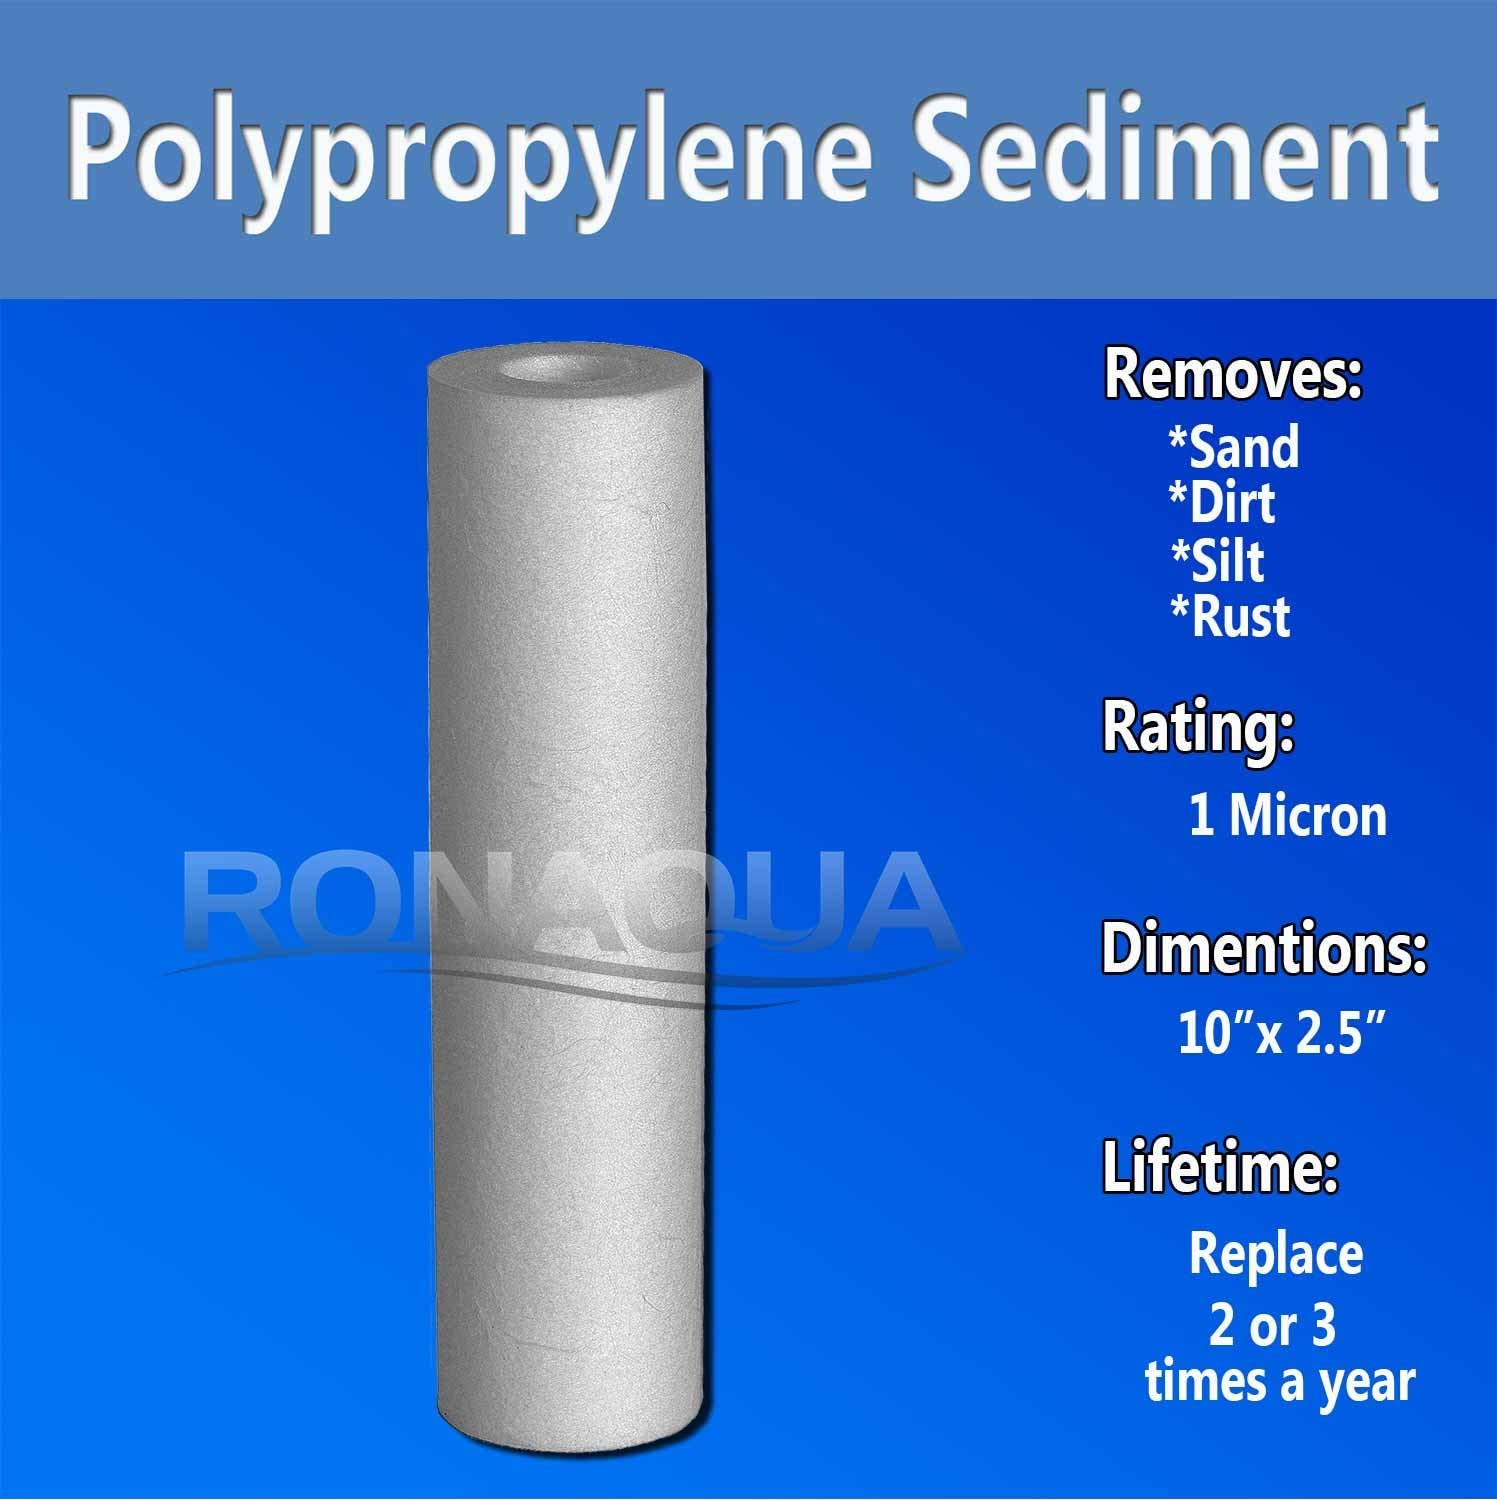 made from Polypropylene 25 Pack, 1 Micron Silt Grooved Sediment Water Filter Cartridge by Ronaqua 10x 2.5 Removes Sand Dirt Rust Four Layers of Filtration